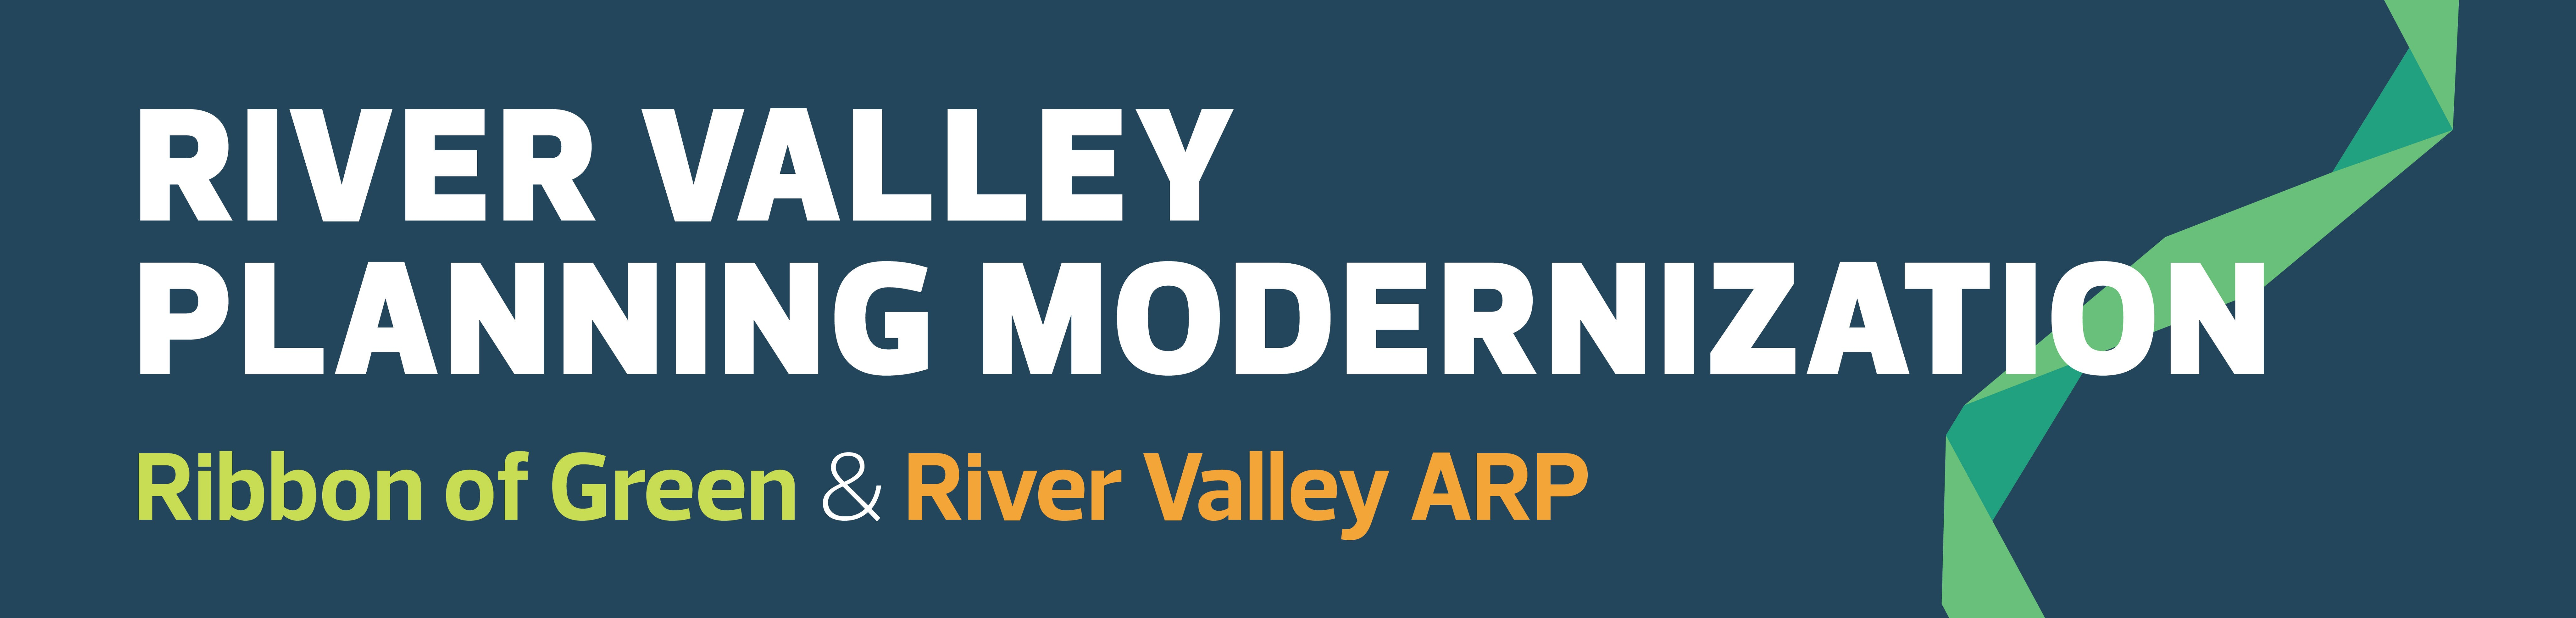 River Valley Planning Modernization, Ribbon of Green and River Valley ARP